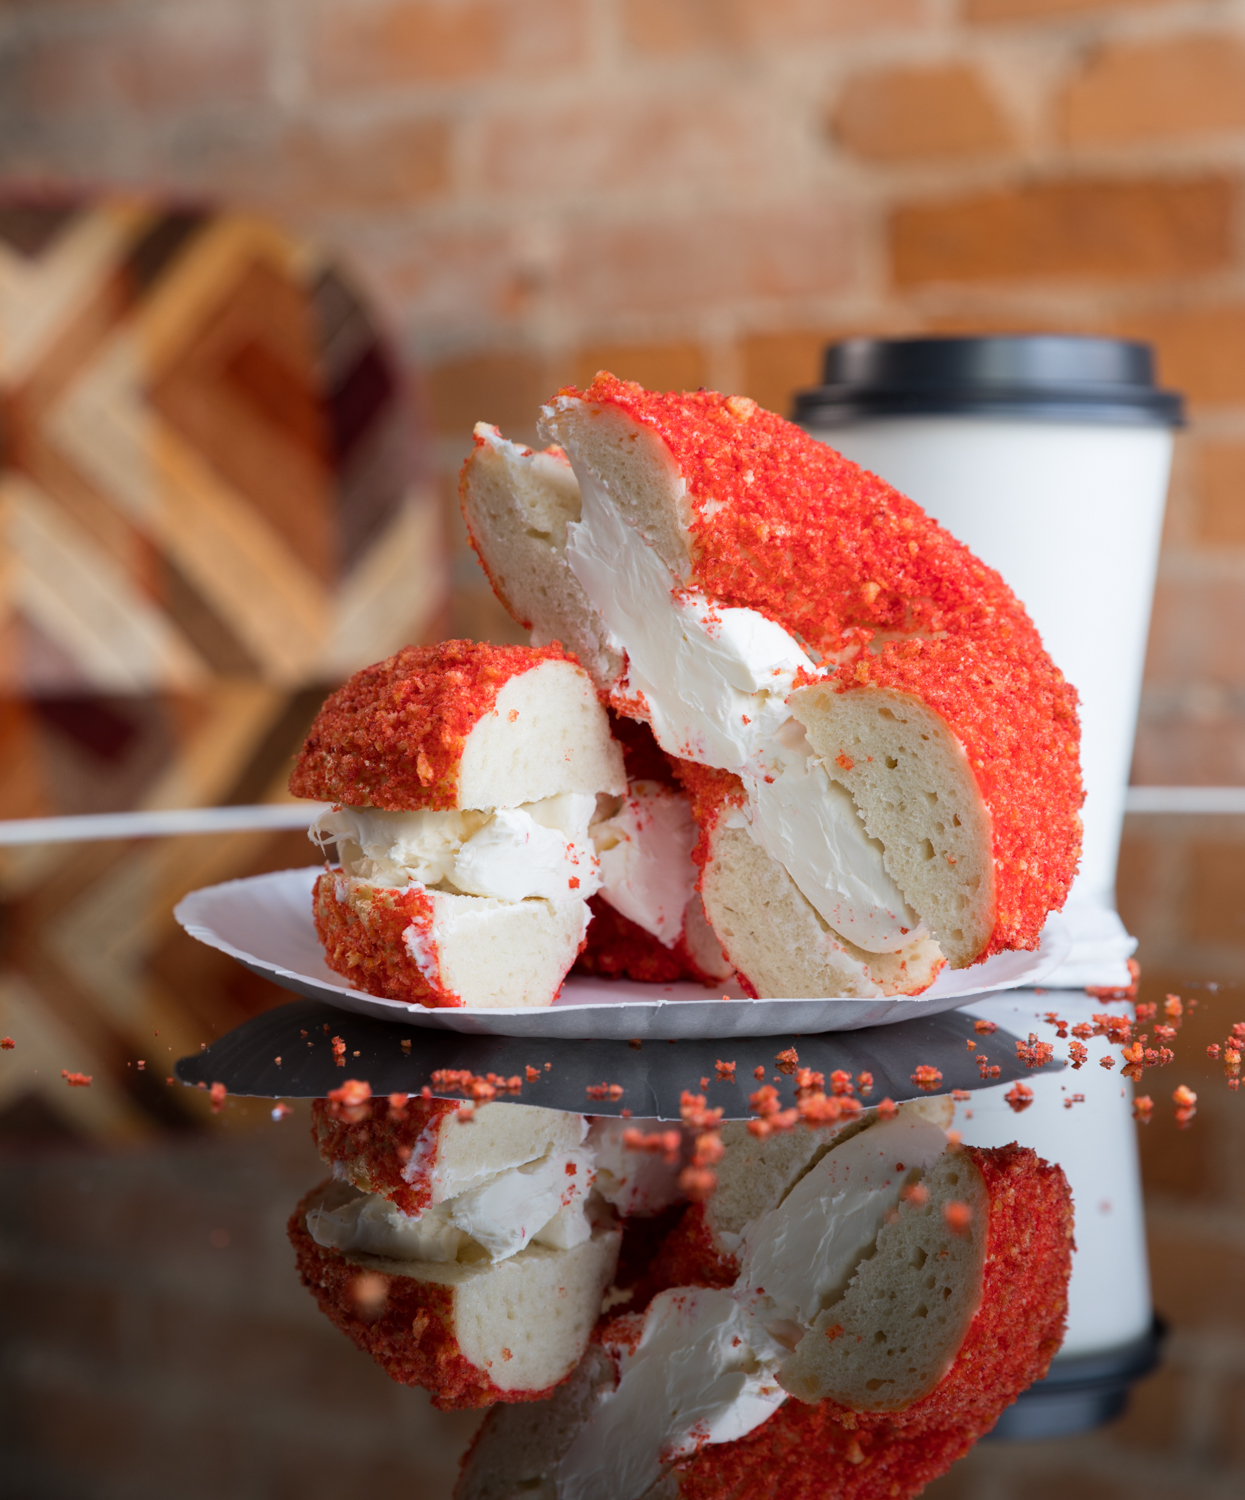 Flamin Hot Cheeto bagel with plain cream cheese / Image: Marlene Rounds // Published: 2.21.19